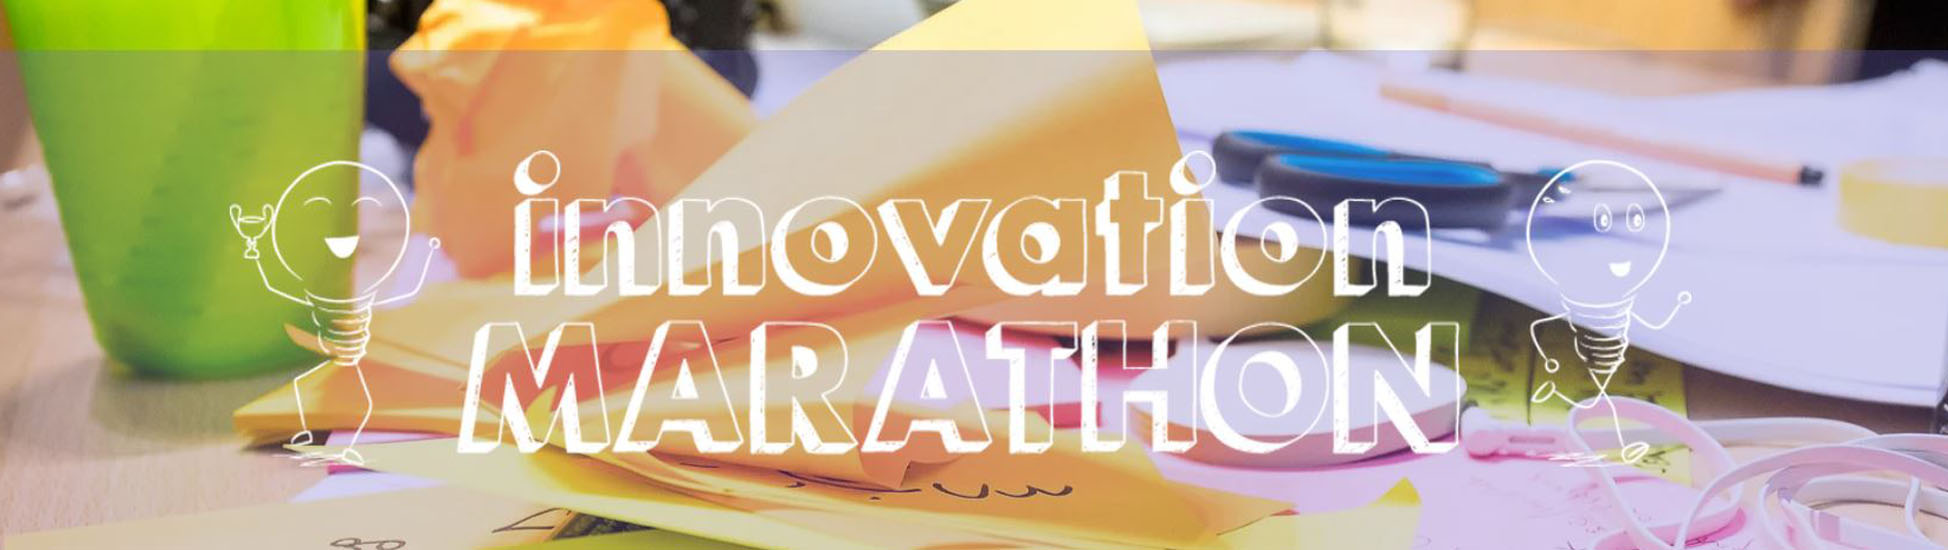 Innovation Marathon_Header